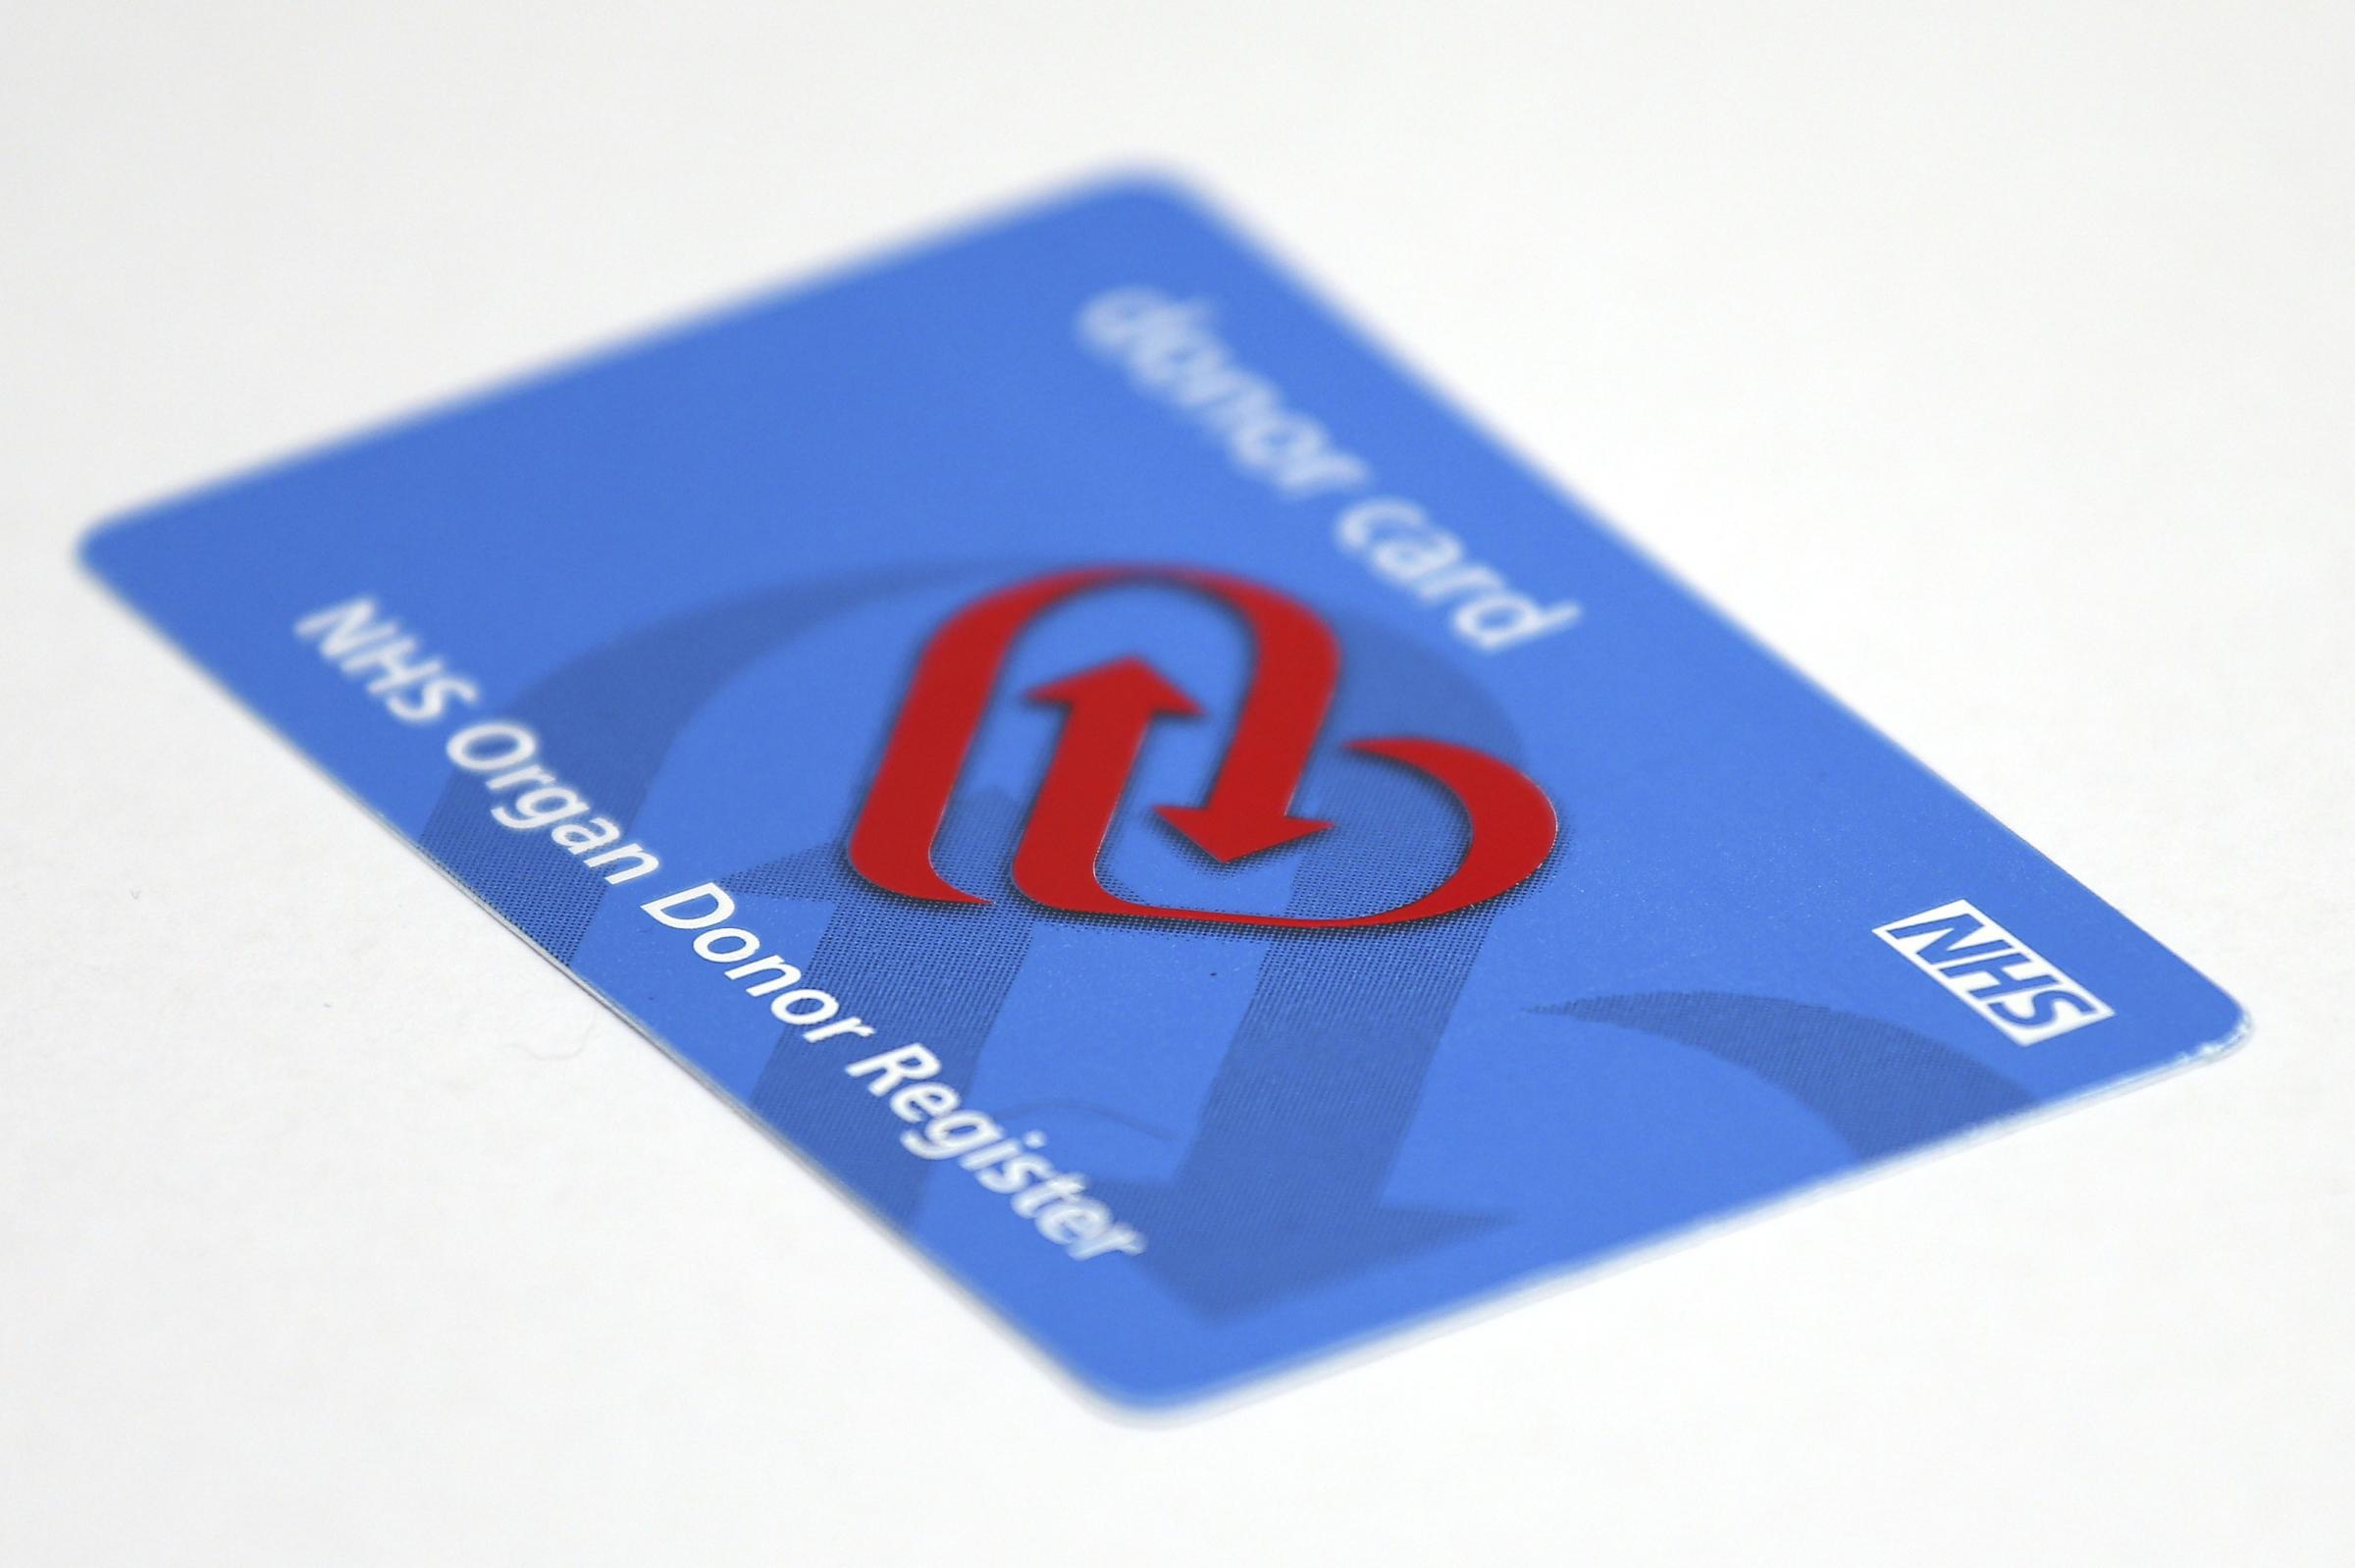 NHS Organ Donation Register card